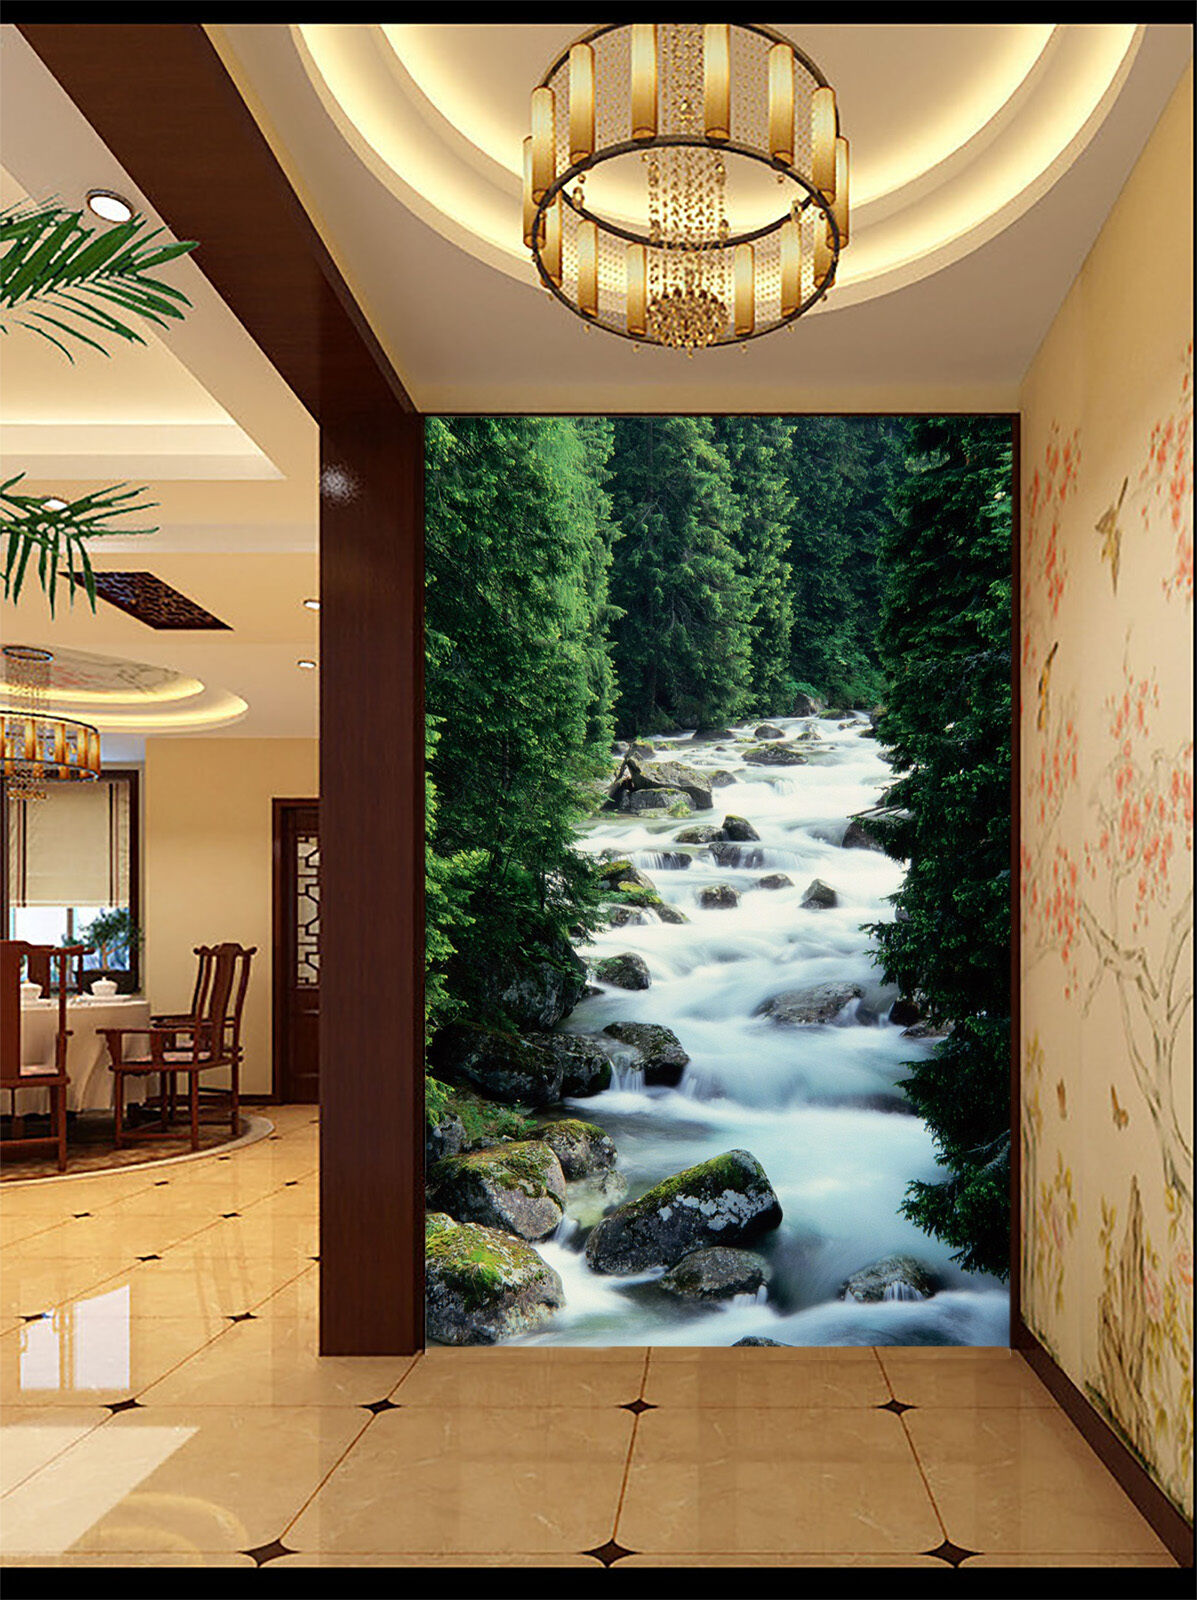 3D Jungle.Ruisseau Photo Papier Peint en Autocollant Murale Plafond Chambre Art